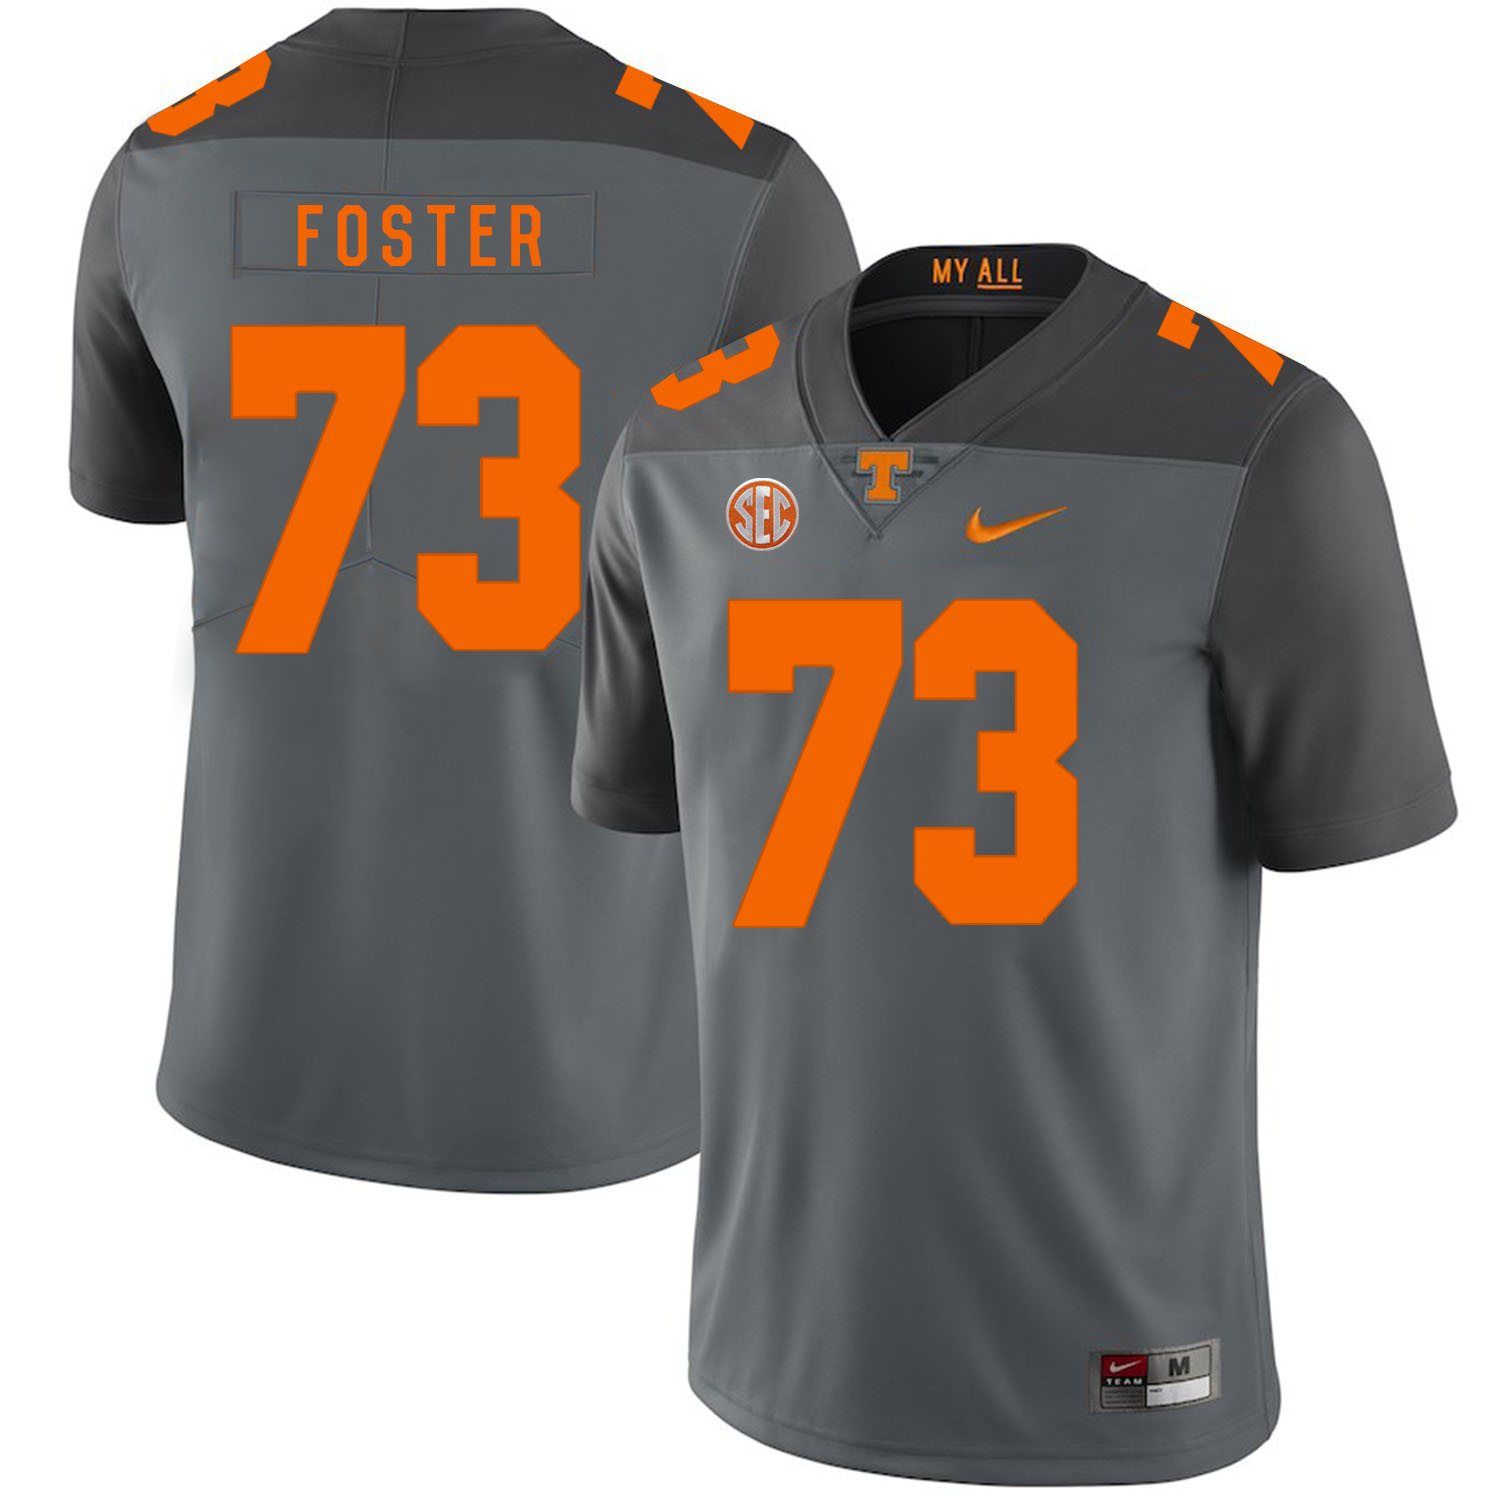 Tennessee Volunteers 73 Ramon Foster Gray Nike College Football Jersey